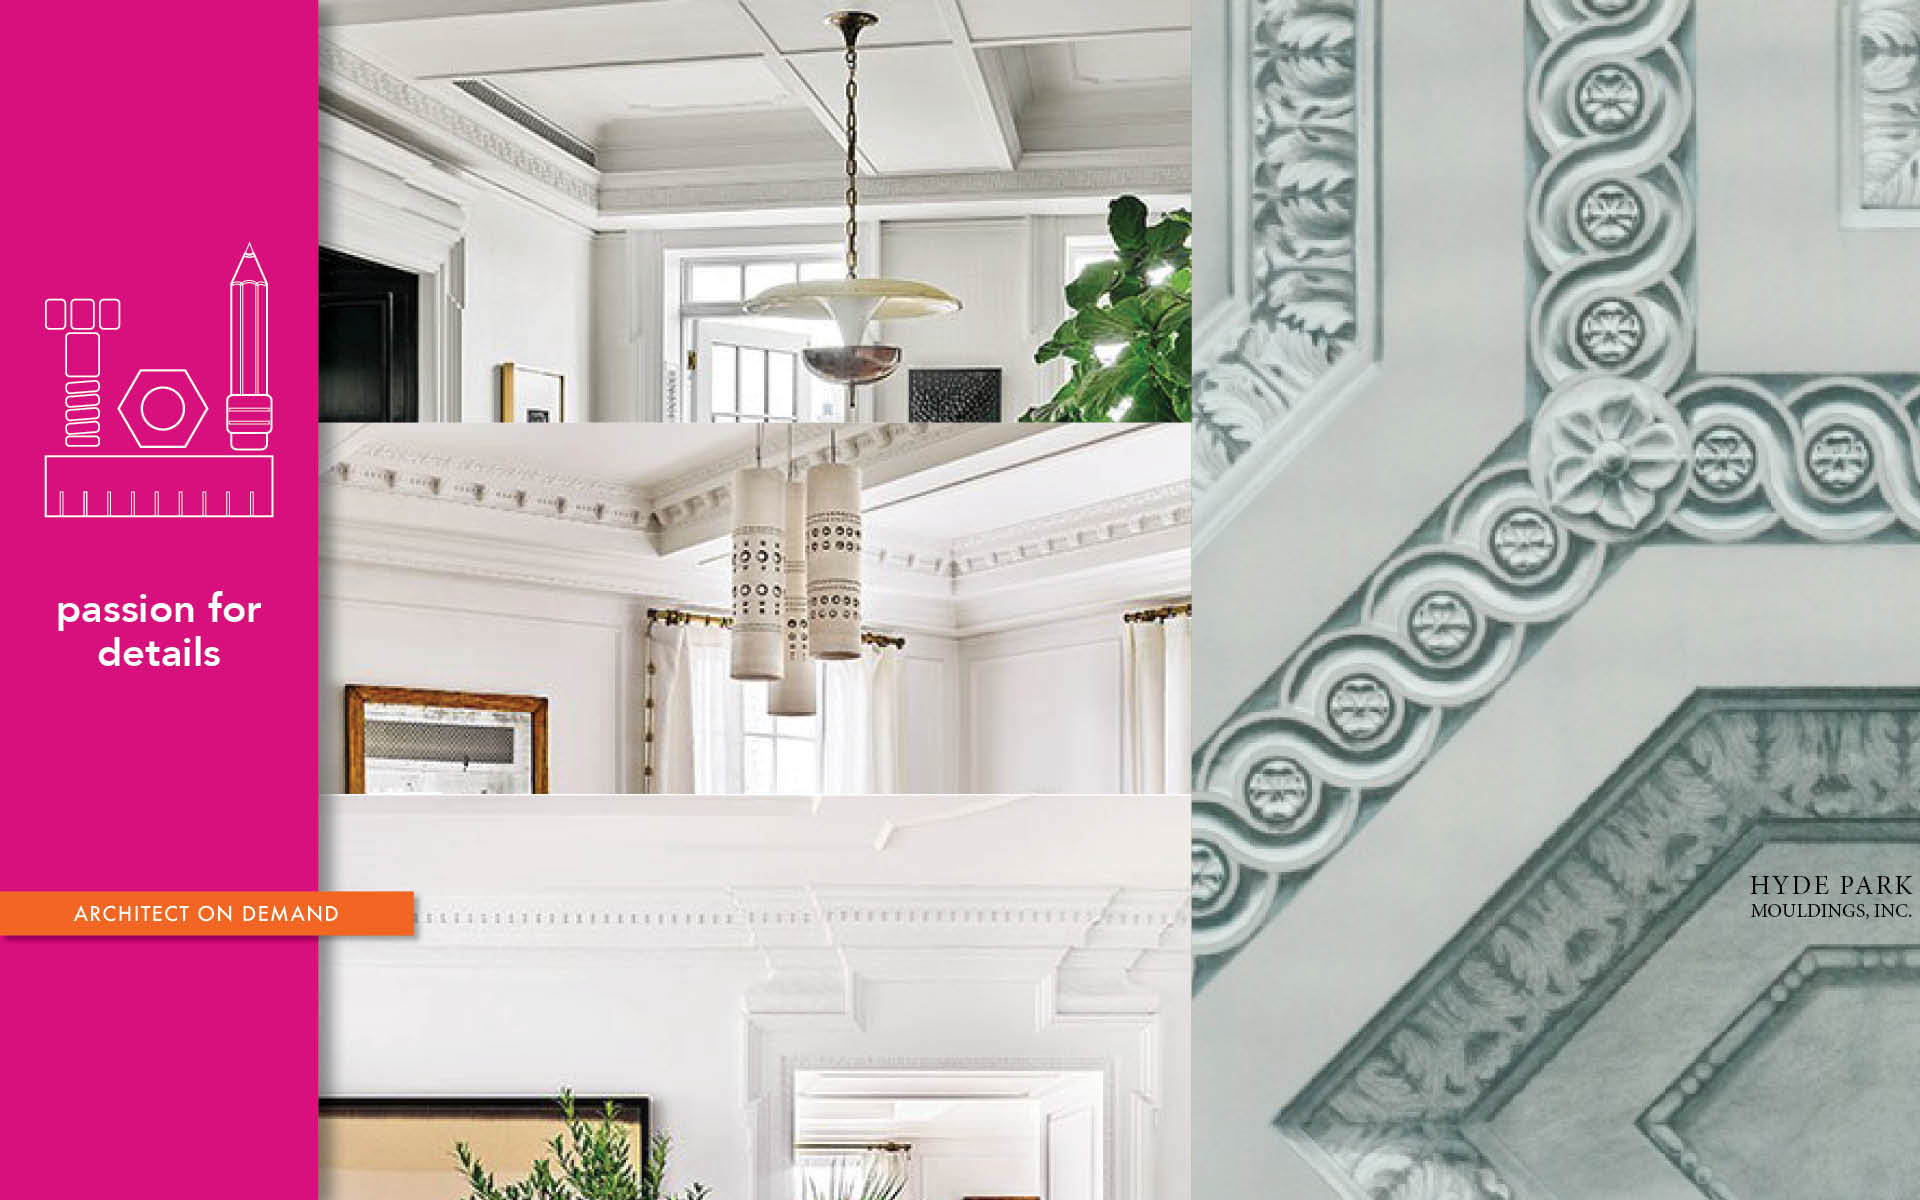 cornice molding, wall, ceiling, light, cove, architect-on-demand, advice-without-strings